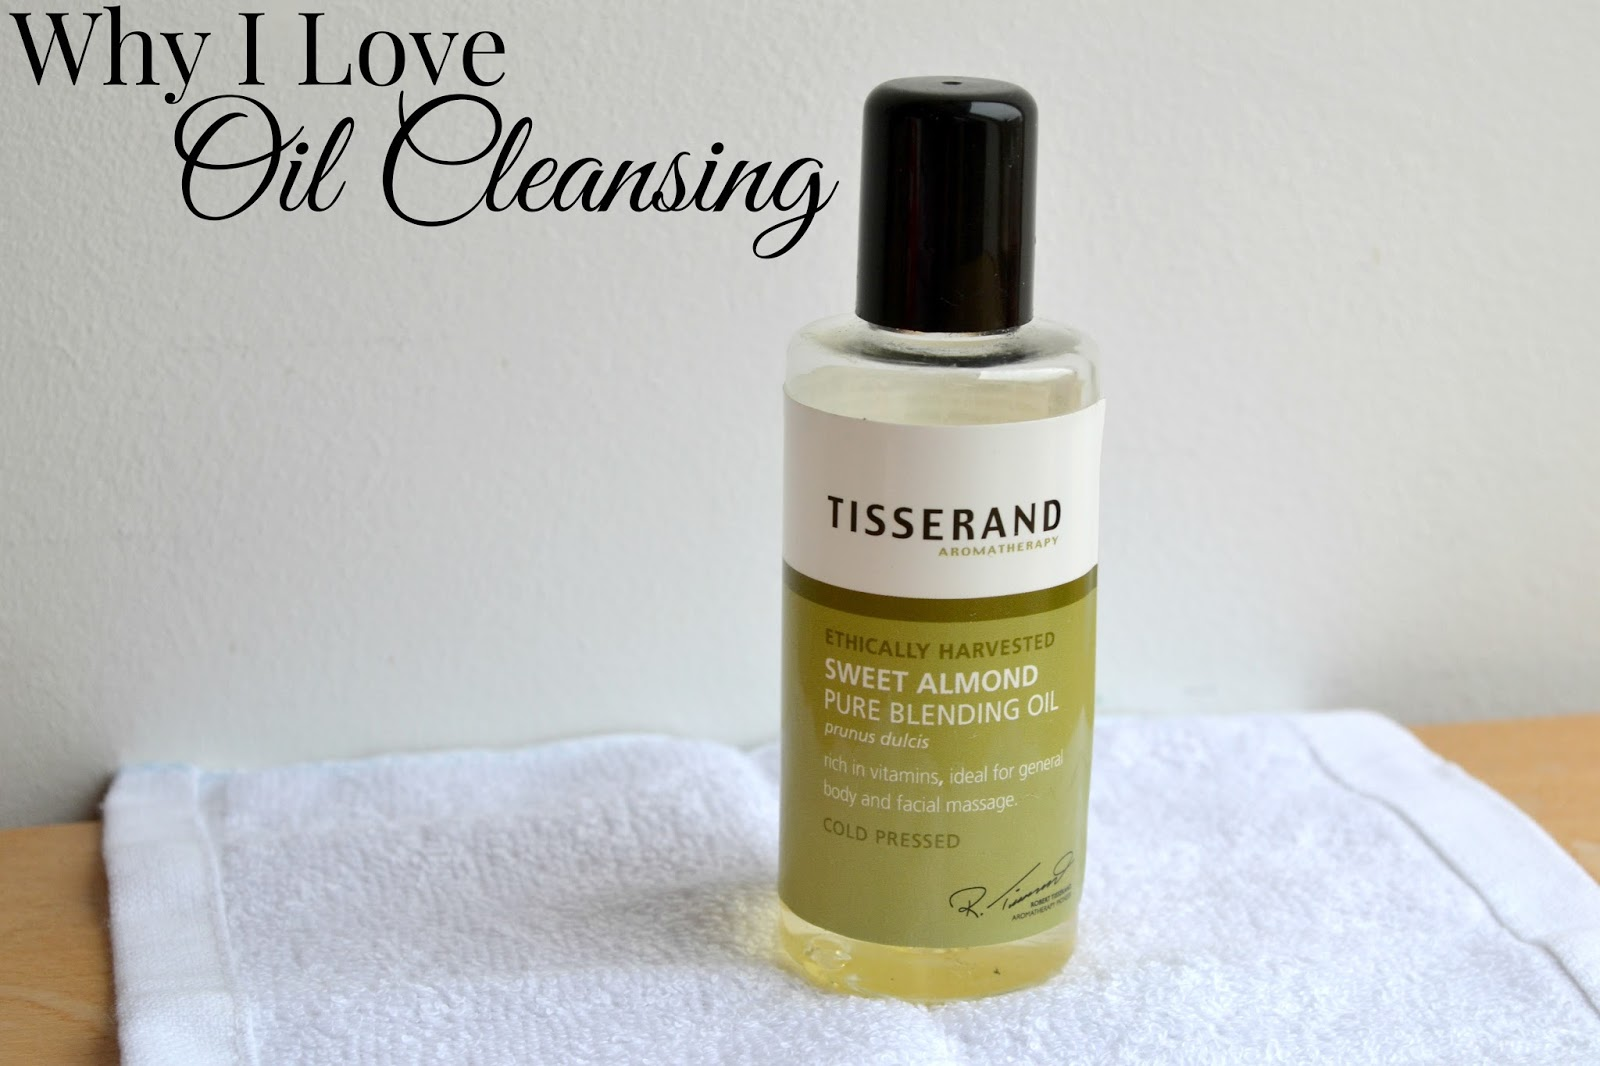 Why I Love Oil Cleansing! Sweet Almond Oil on a Flannel